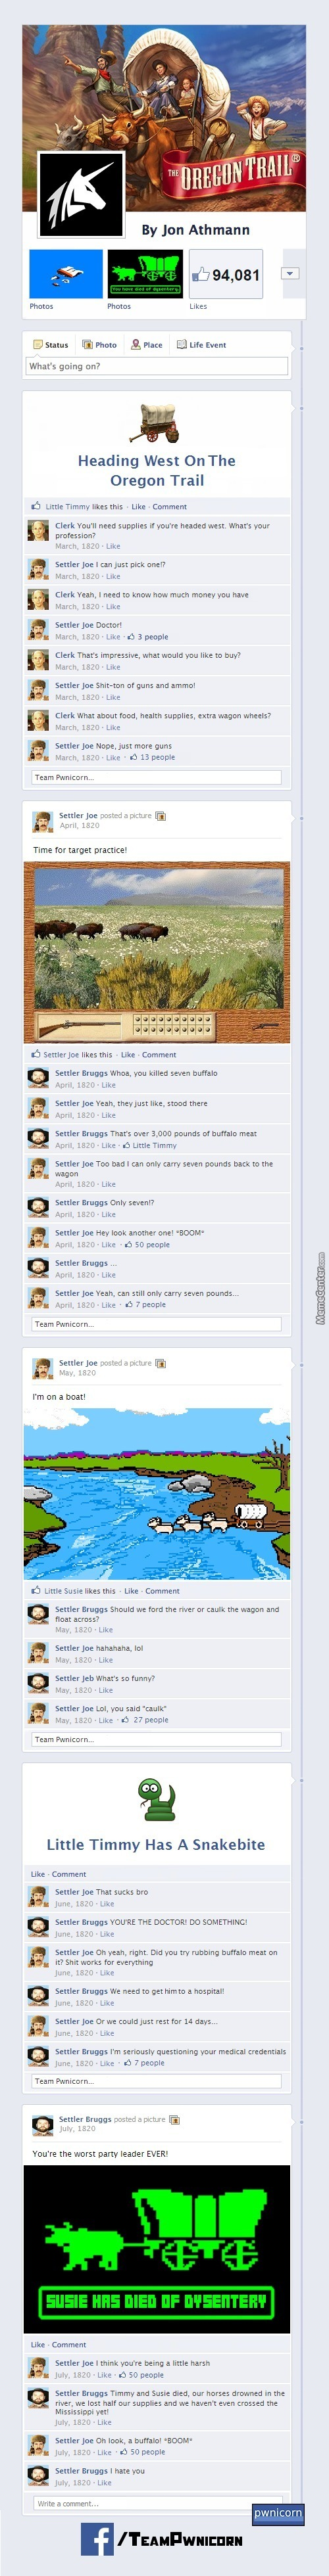 The Oregon Trail On Facebook